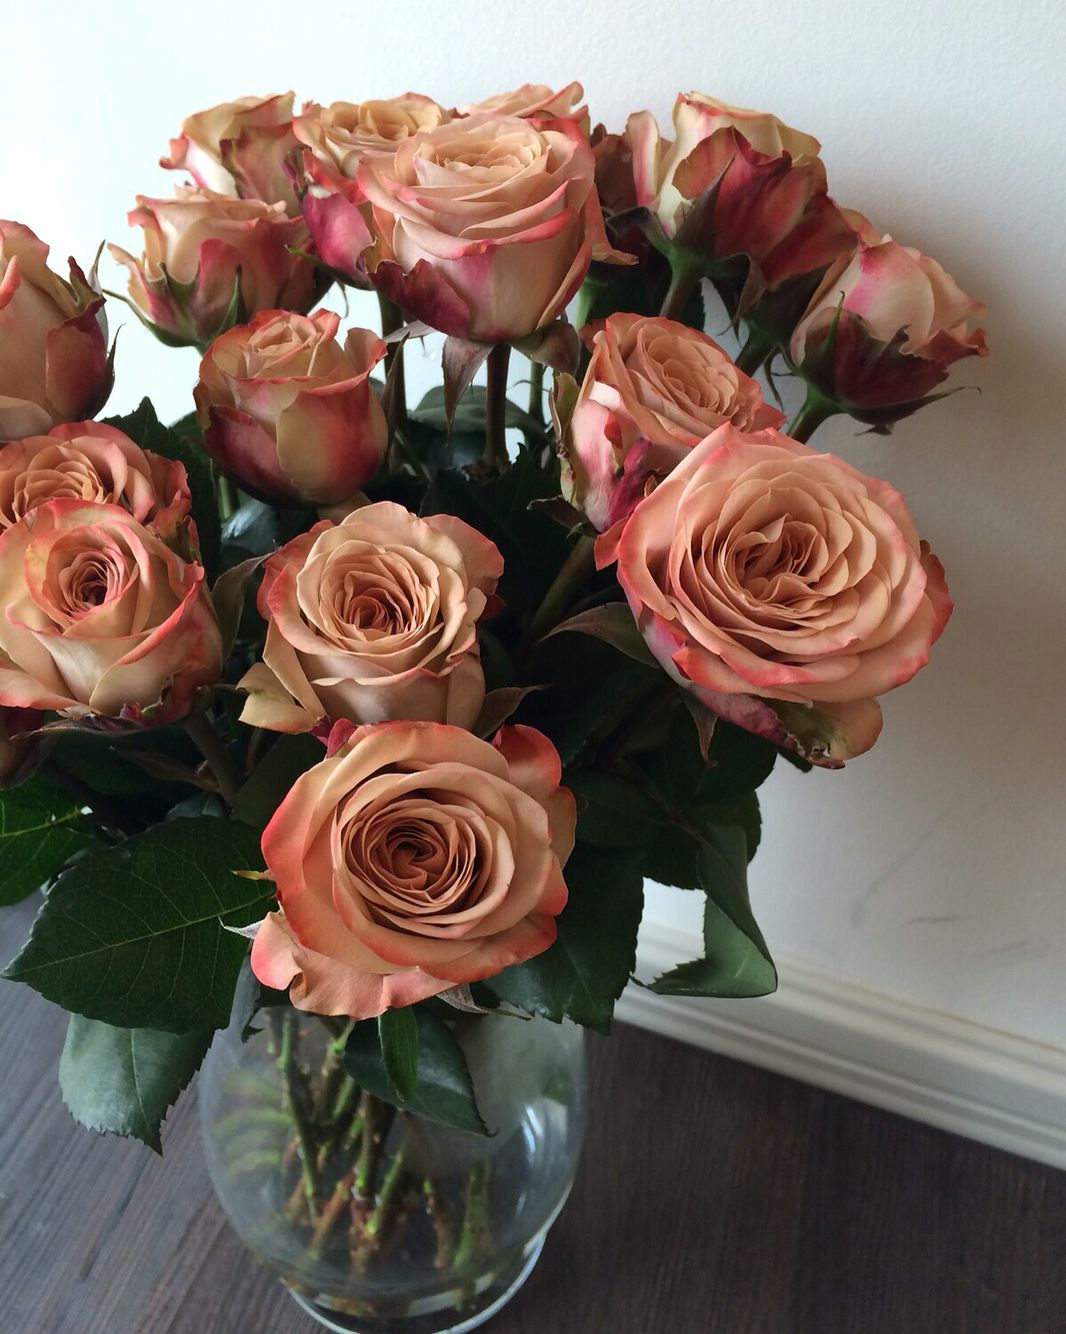 Fresh in store today!! Kenya cappuccino roses! Pls drop by to pick